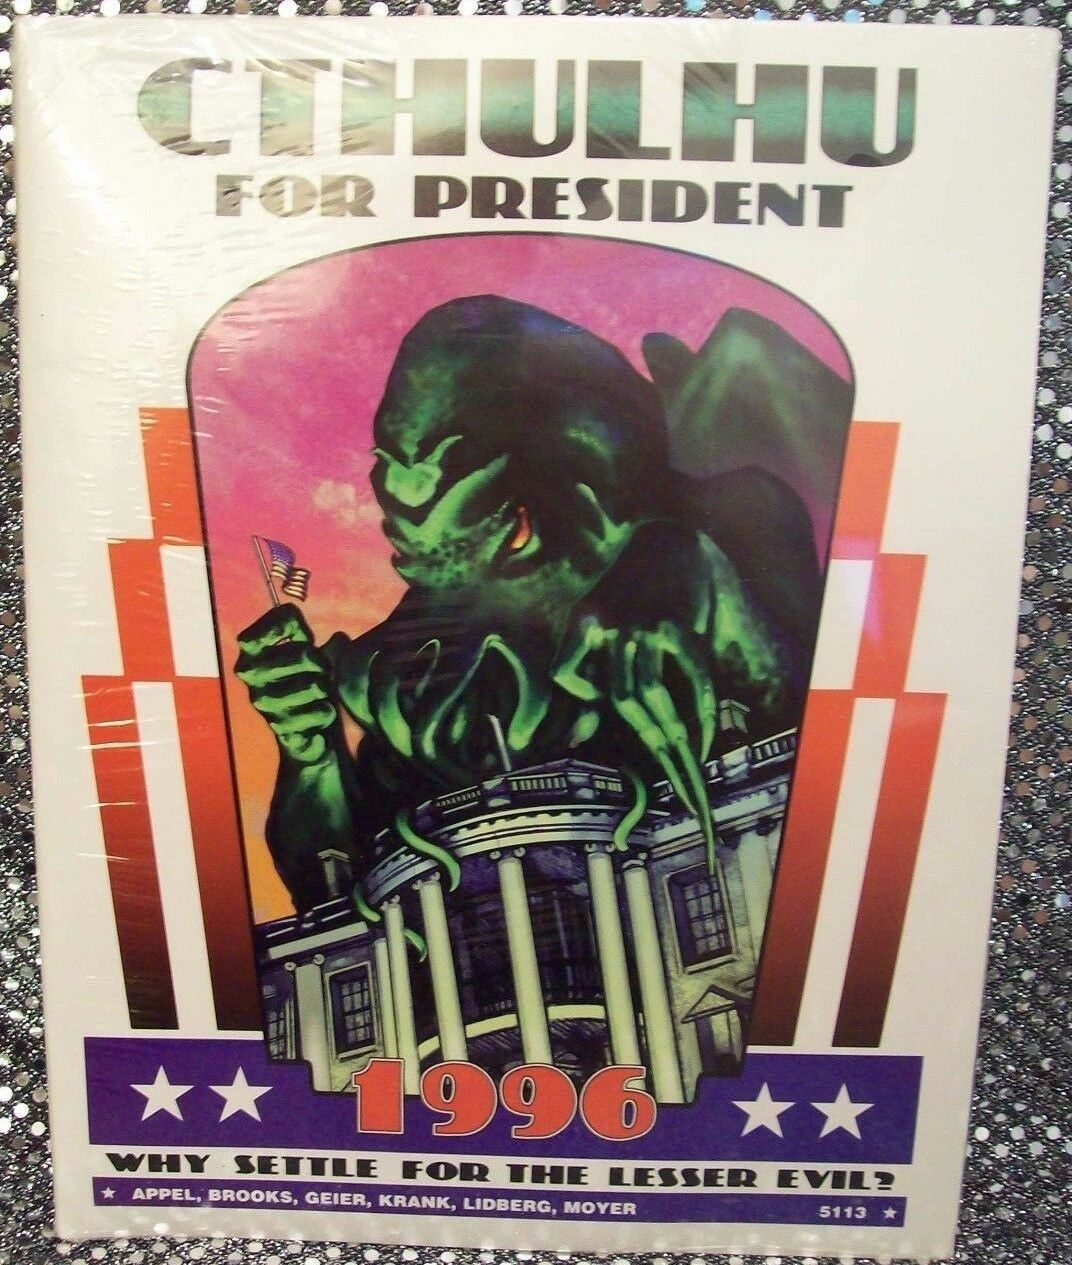 CALL OF CTHULHU: CTHULHU FOR PRESIDENT~CHAOSIUM  5113  1996  HP LOVECRAFT/TRUMP